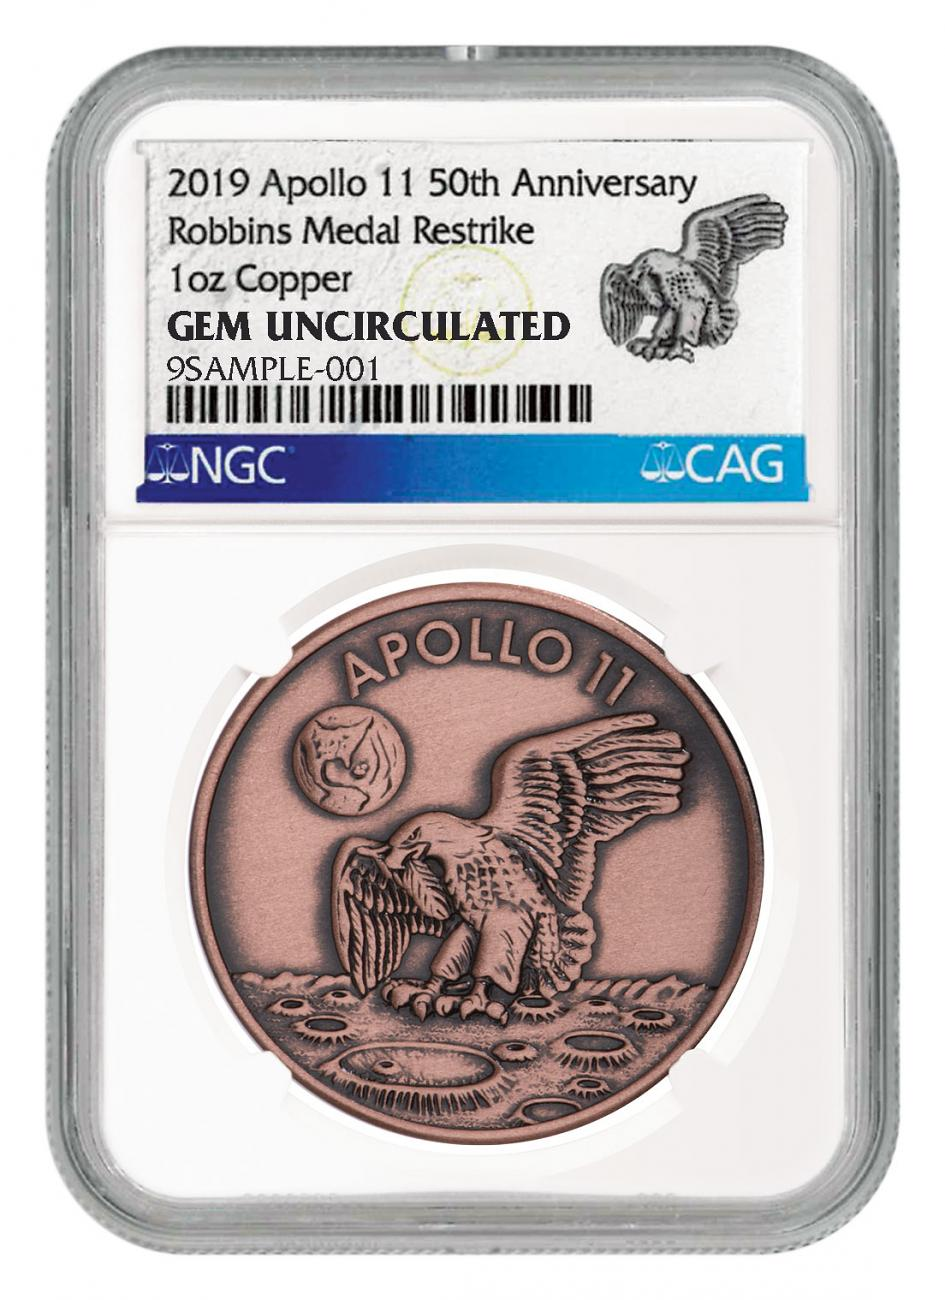 1969-2019 Apollo 11 50th Anniversary Robbins Medals 1 oz Copper Antiqued Medal NGC GEM Unc